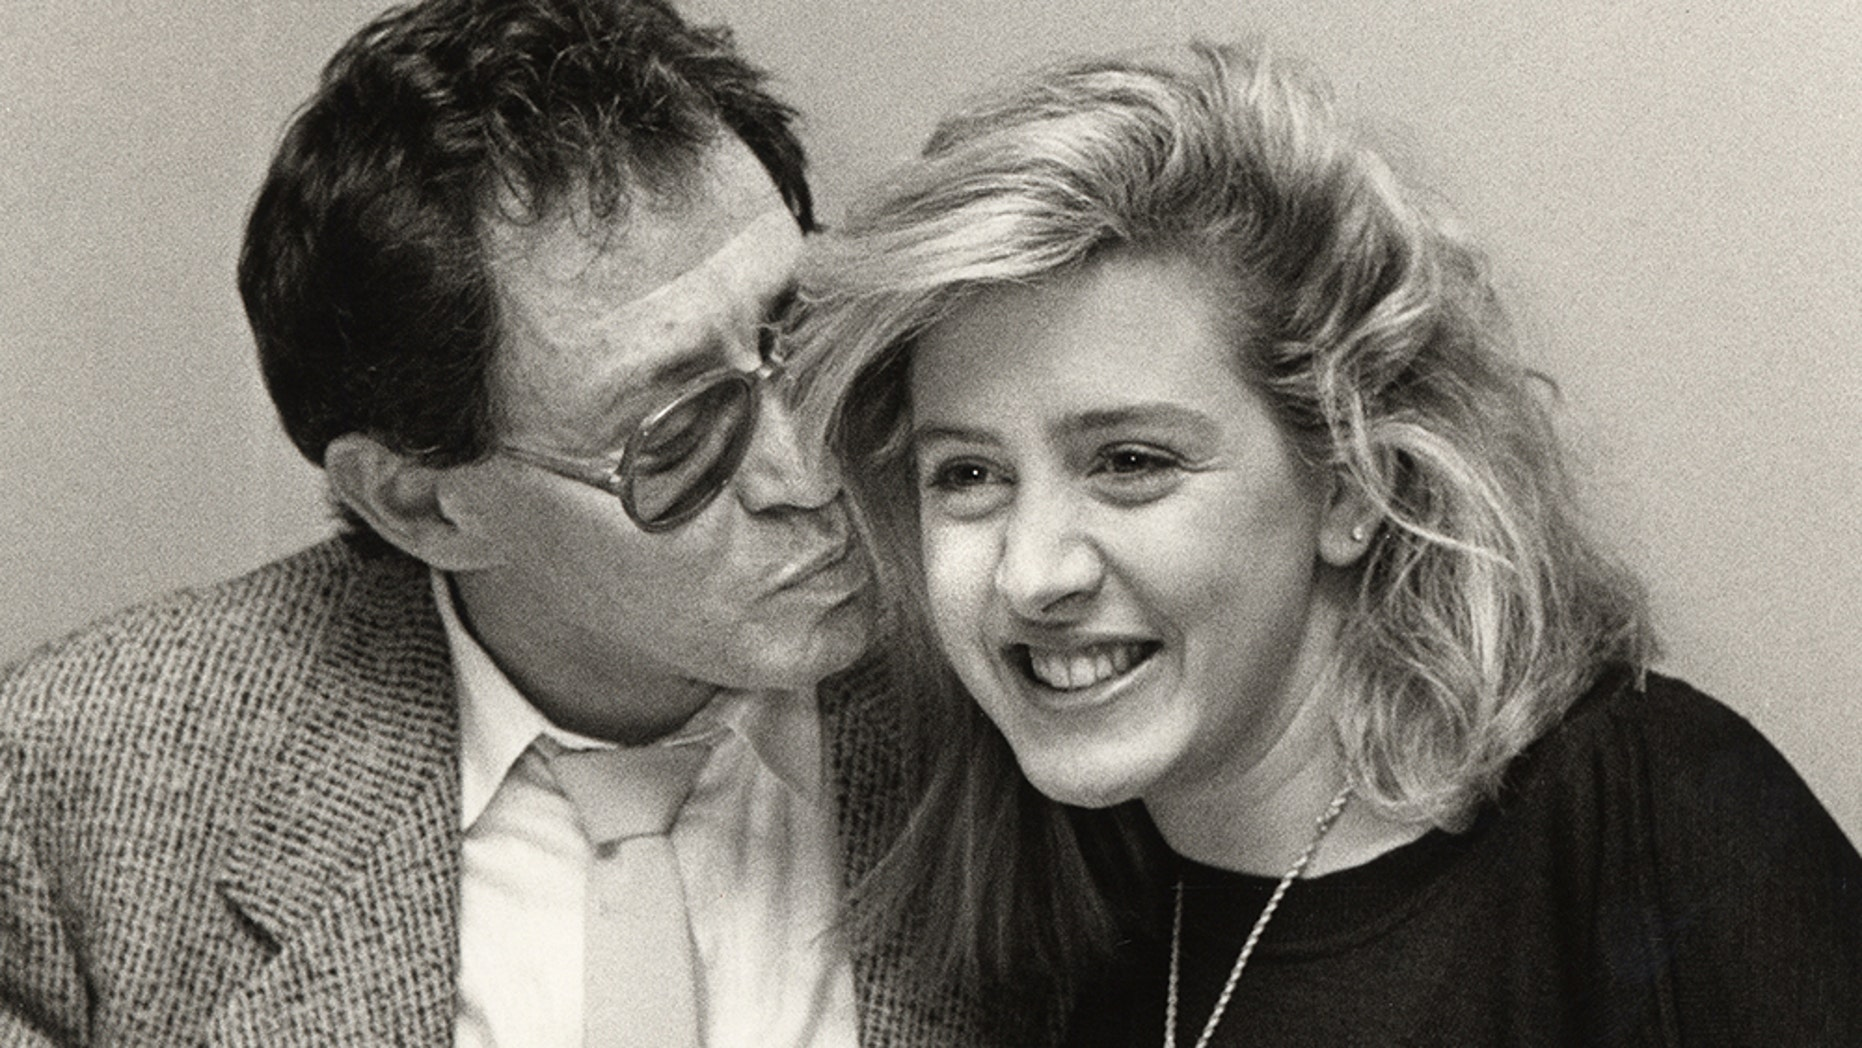 Eddie Fisher and Joely Fisher.